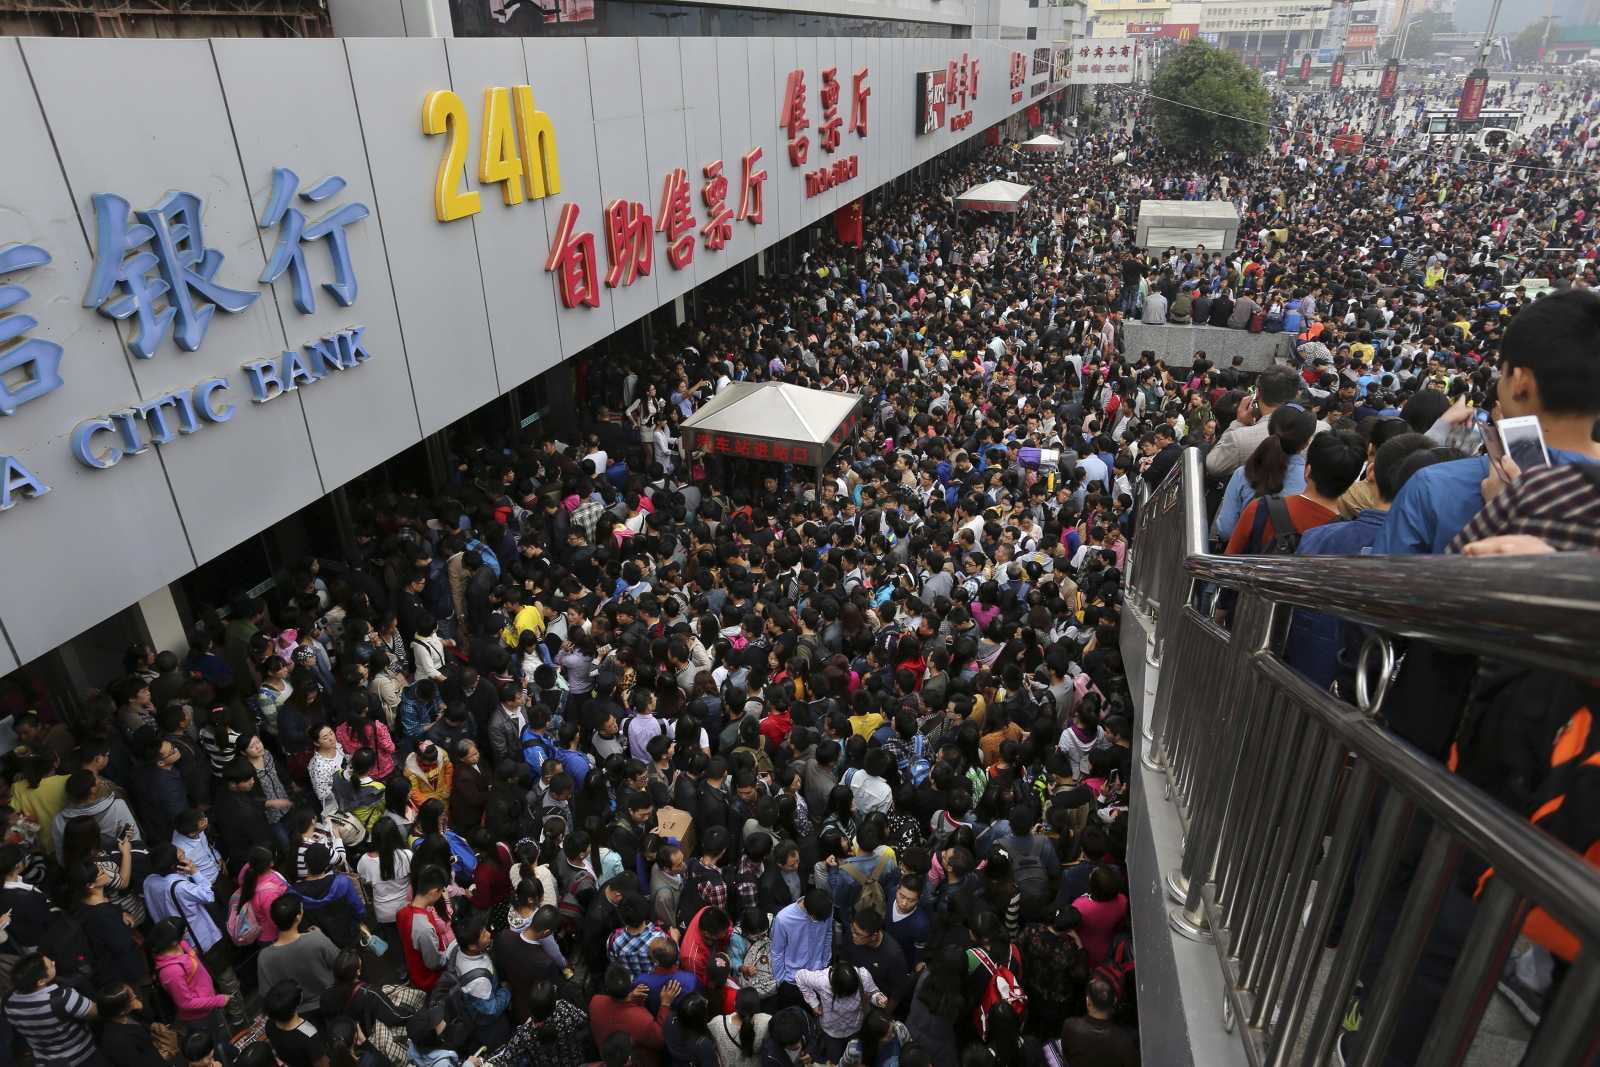 Passengers wait to get in the crowded Zhengzhou Railway Station, on the first day of the seven-day national day holiday, in Zhengzhou, Henan province October 1, 2014.